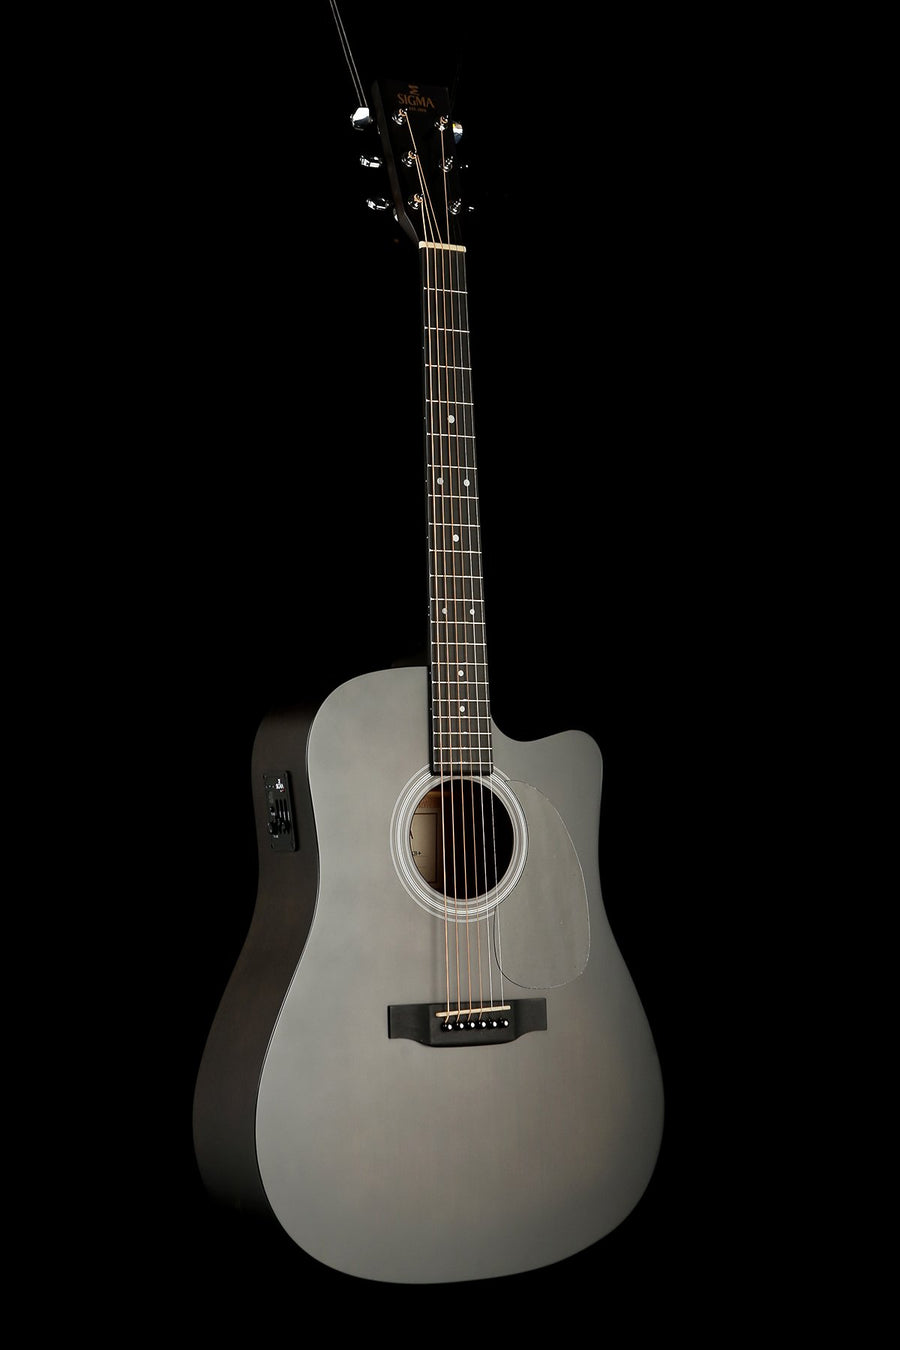 Sigma DMCE-BKBK Dreadnought Acoustic Electric Guitar